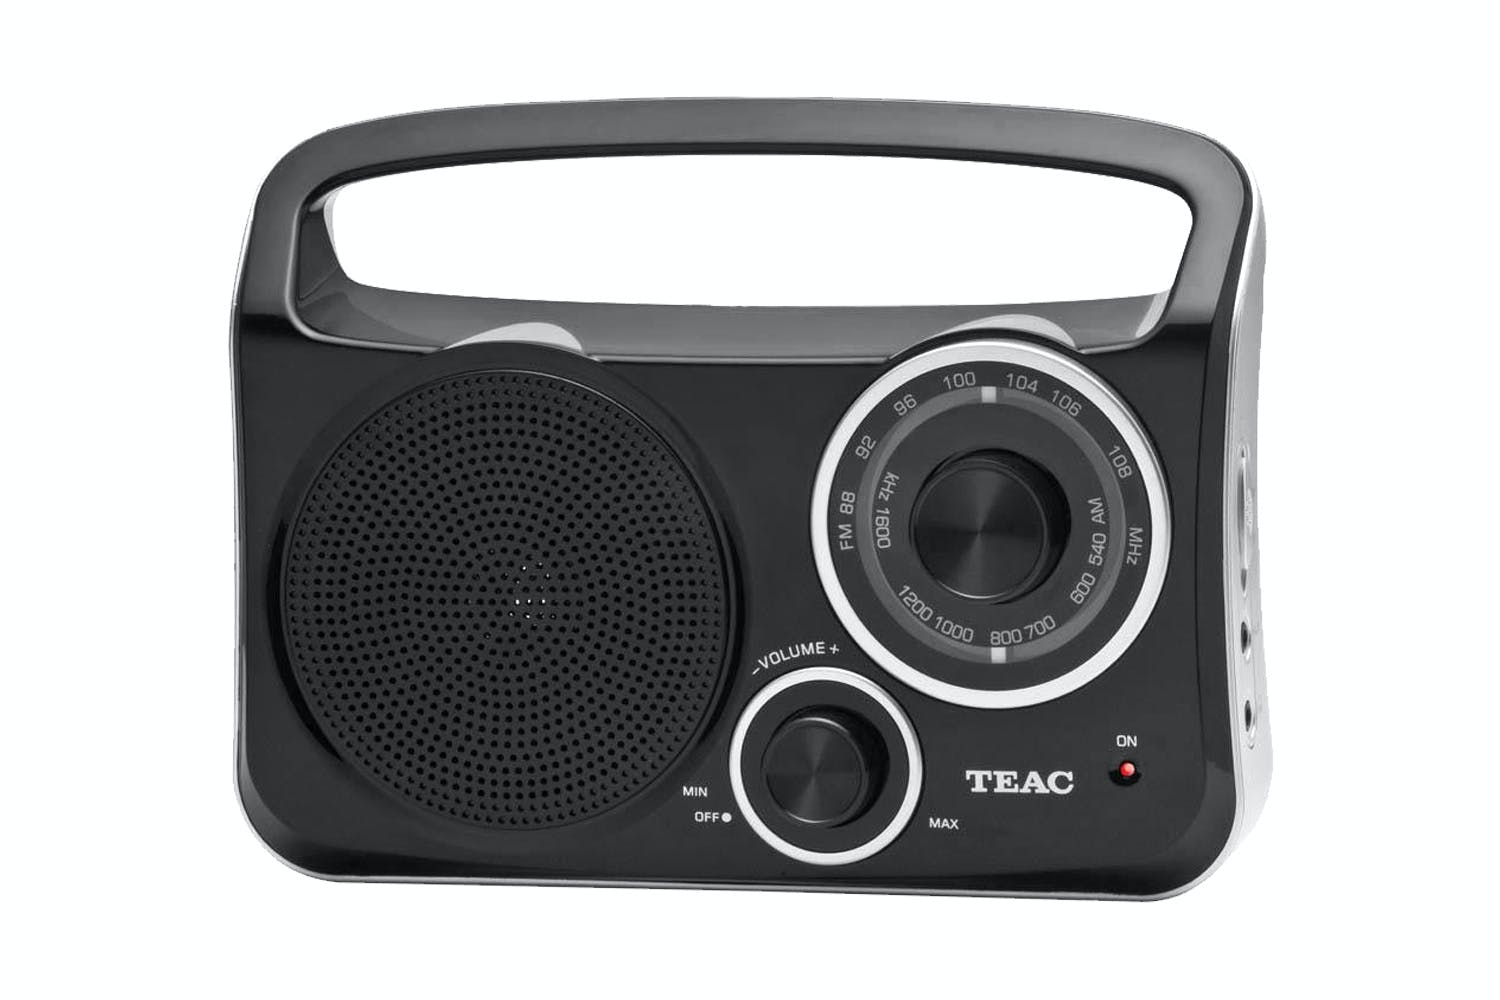 teac portable am fm radio harvey norman new zealand. Black Bedroom Furniture Sets. Home Design Ideas